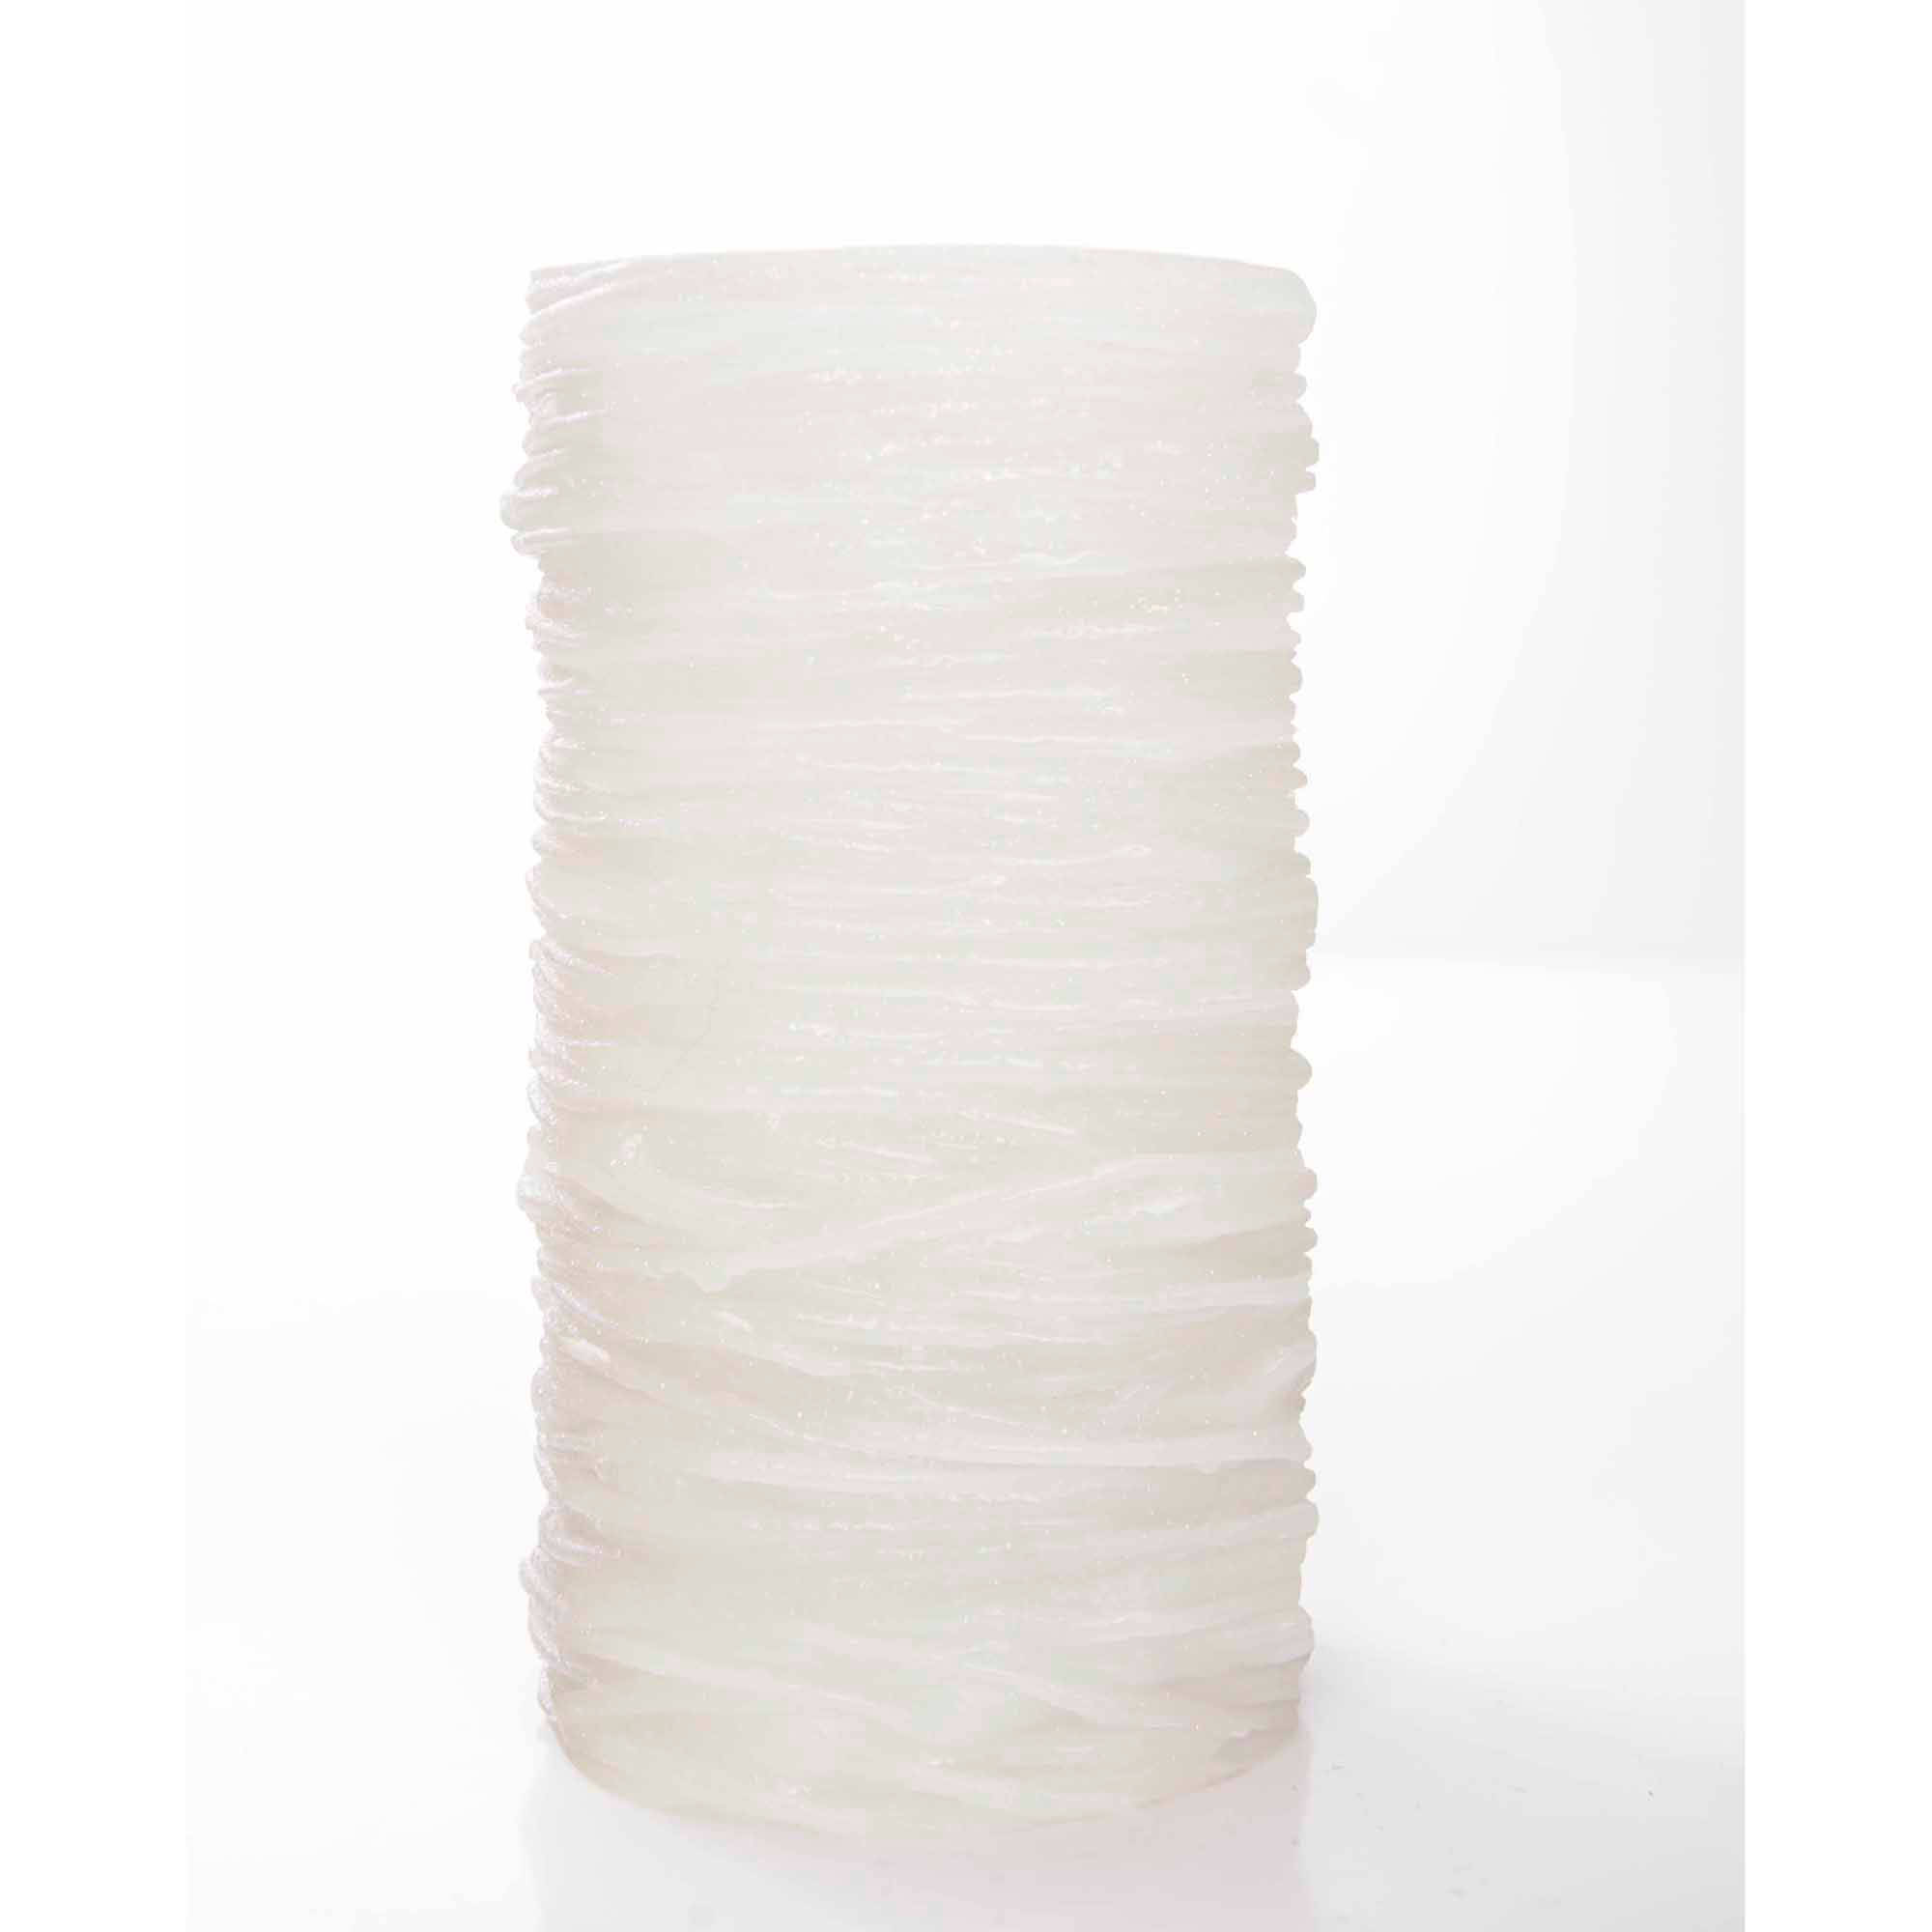 TheAmazingFlamelessCandle The Amazing Flameless Candle Wax Pillar, Layered, White, Unscented, 10mm LED, 4, 6 -  and 8 - Hour Timer and Remote Ready